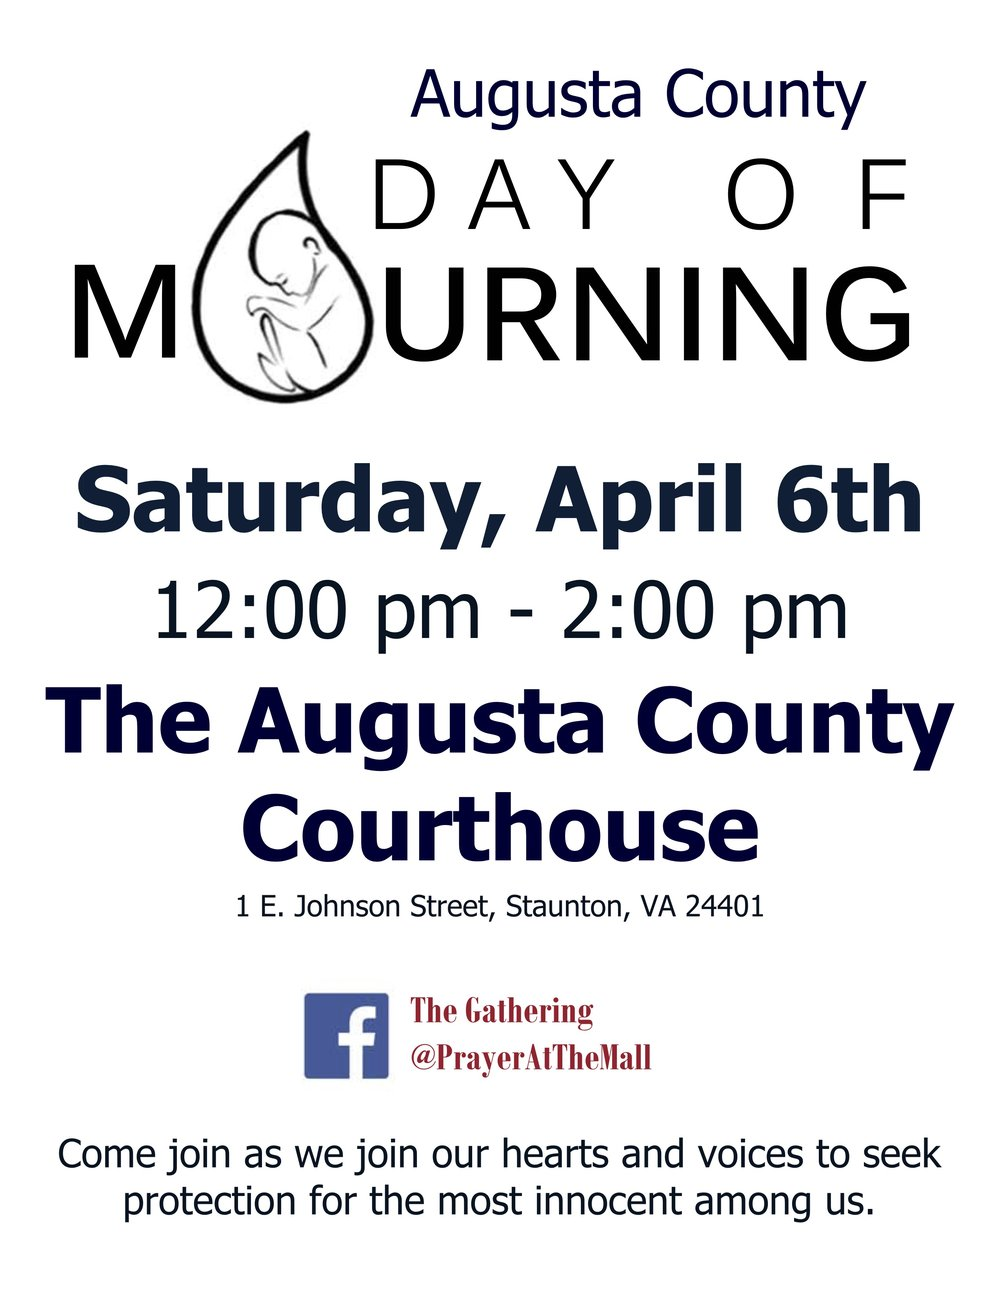 Flyer_A Day of Mourning_2dp.jpg